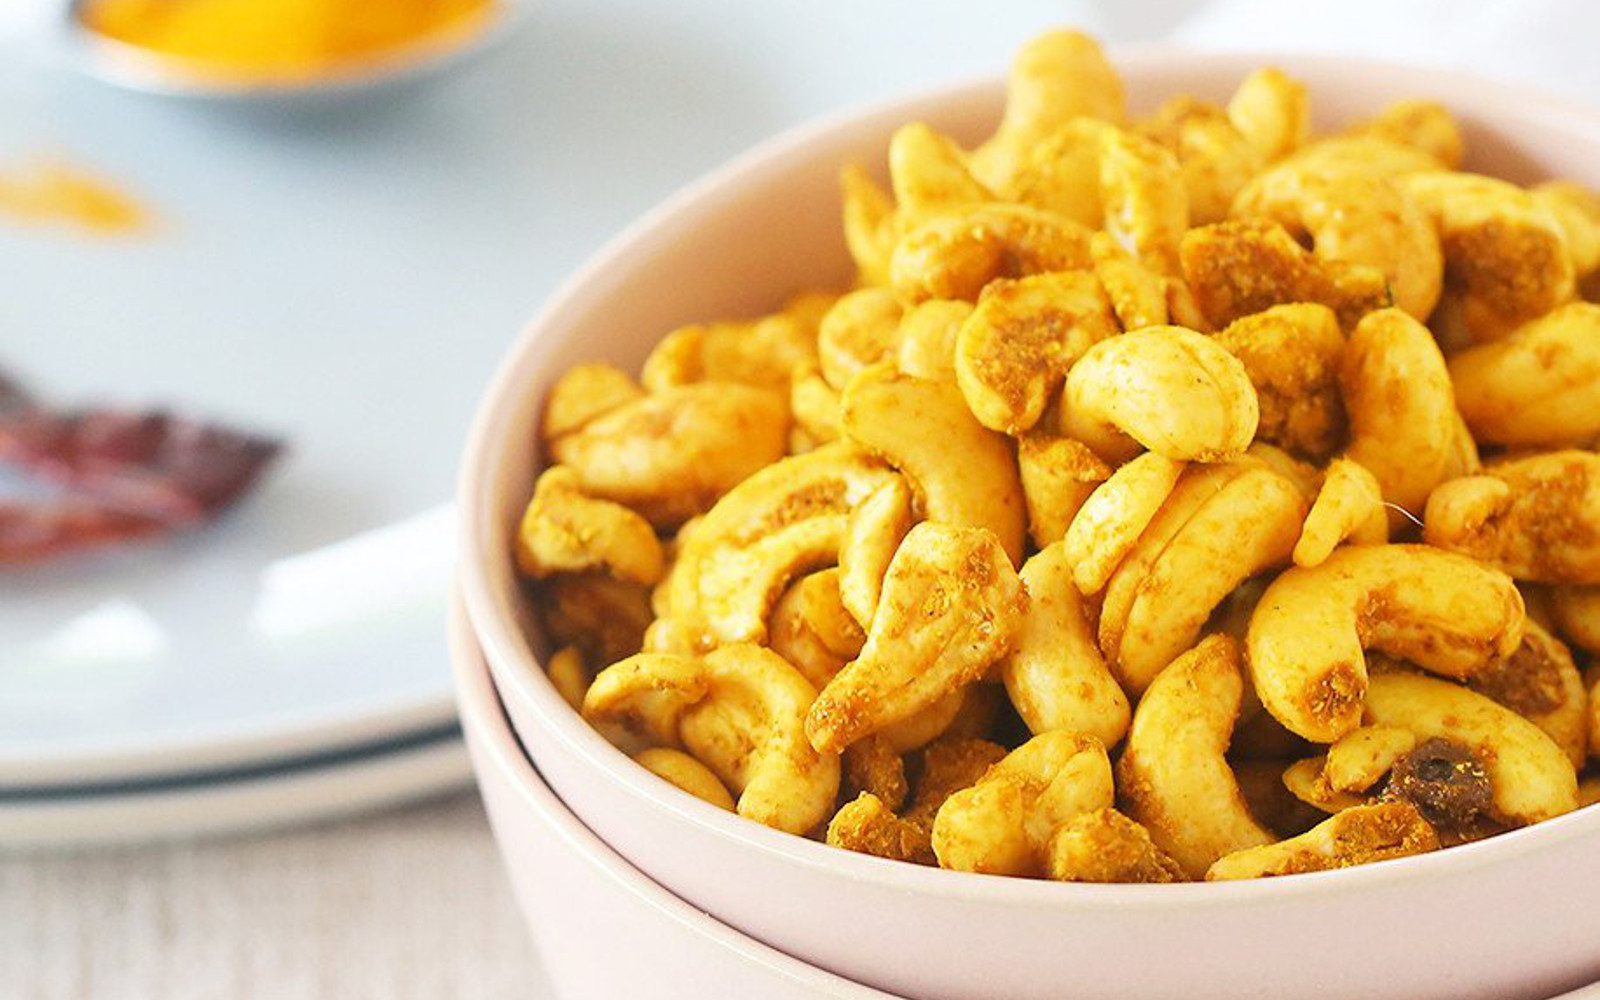 Spicy Golden Turmeric Cashews